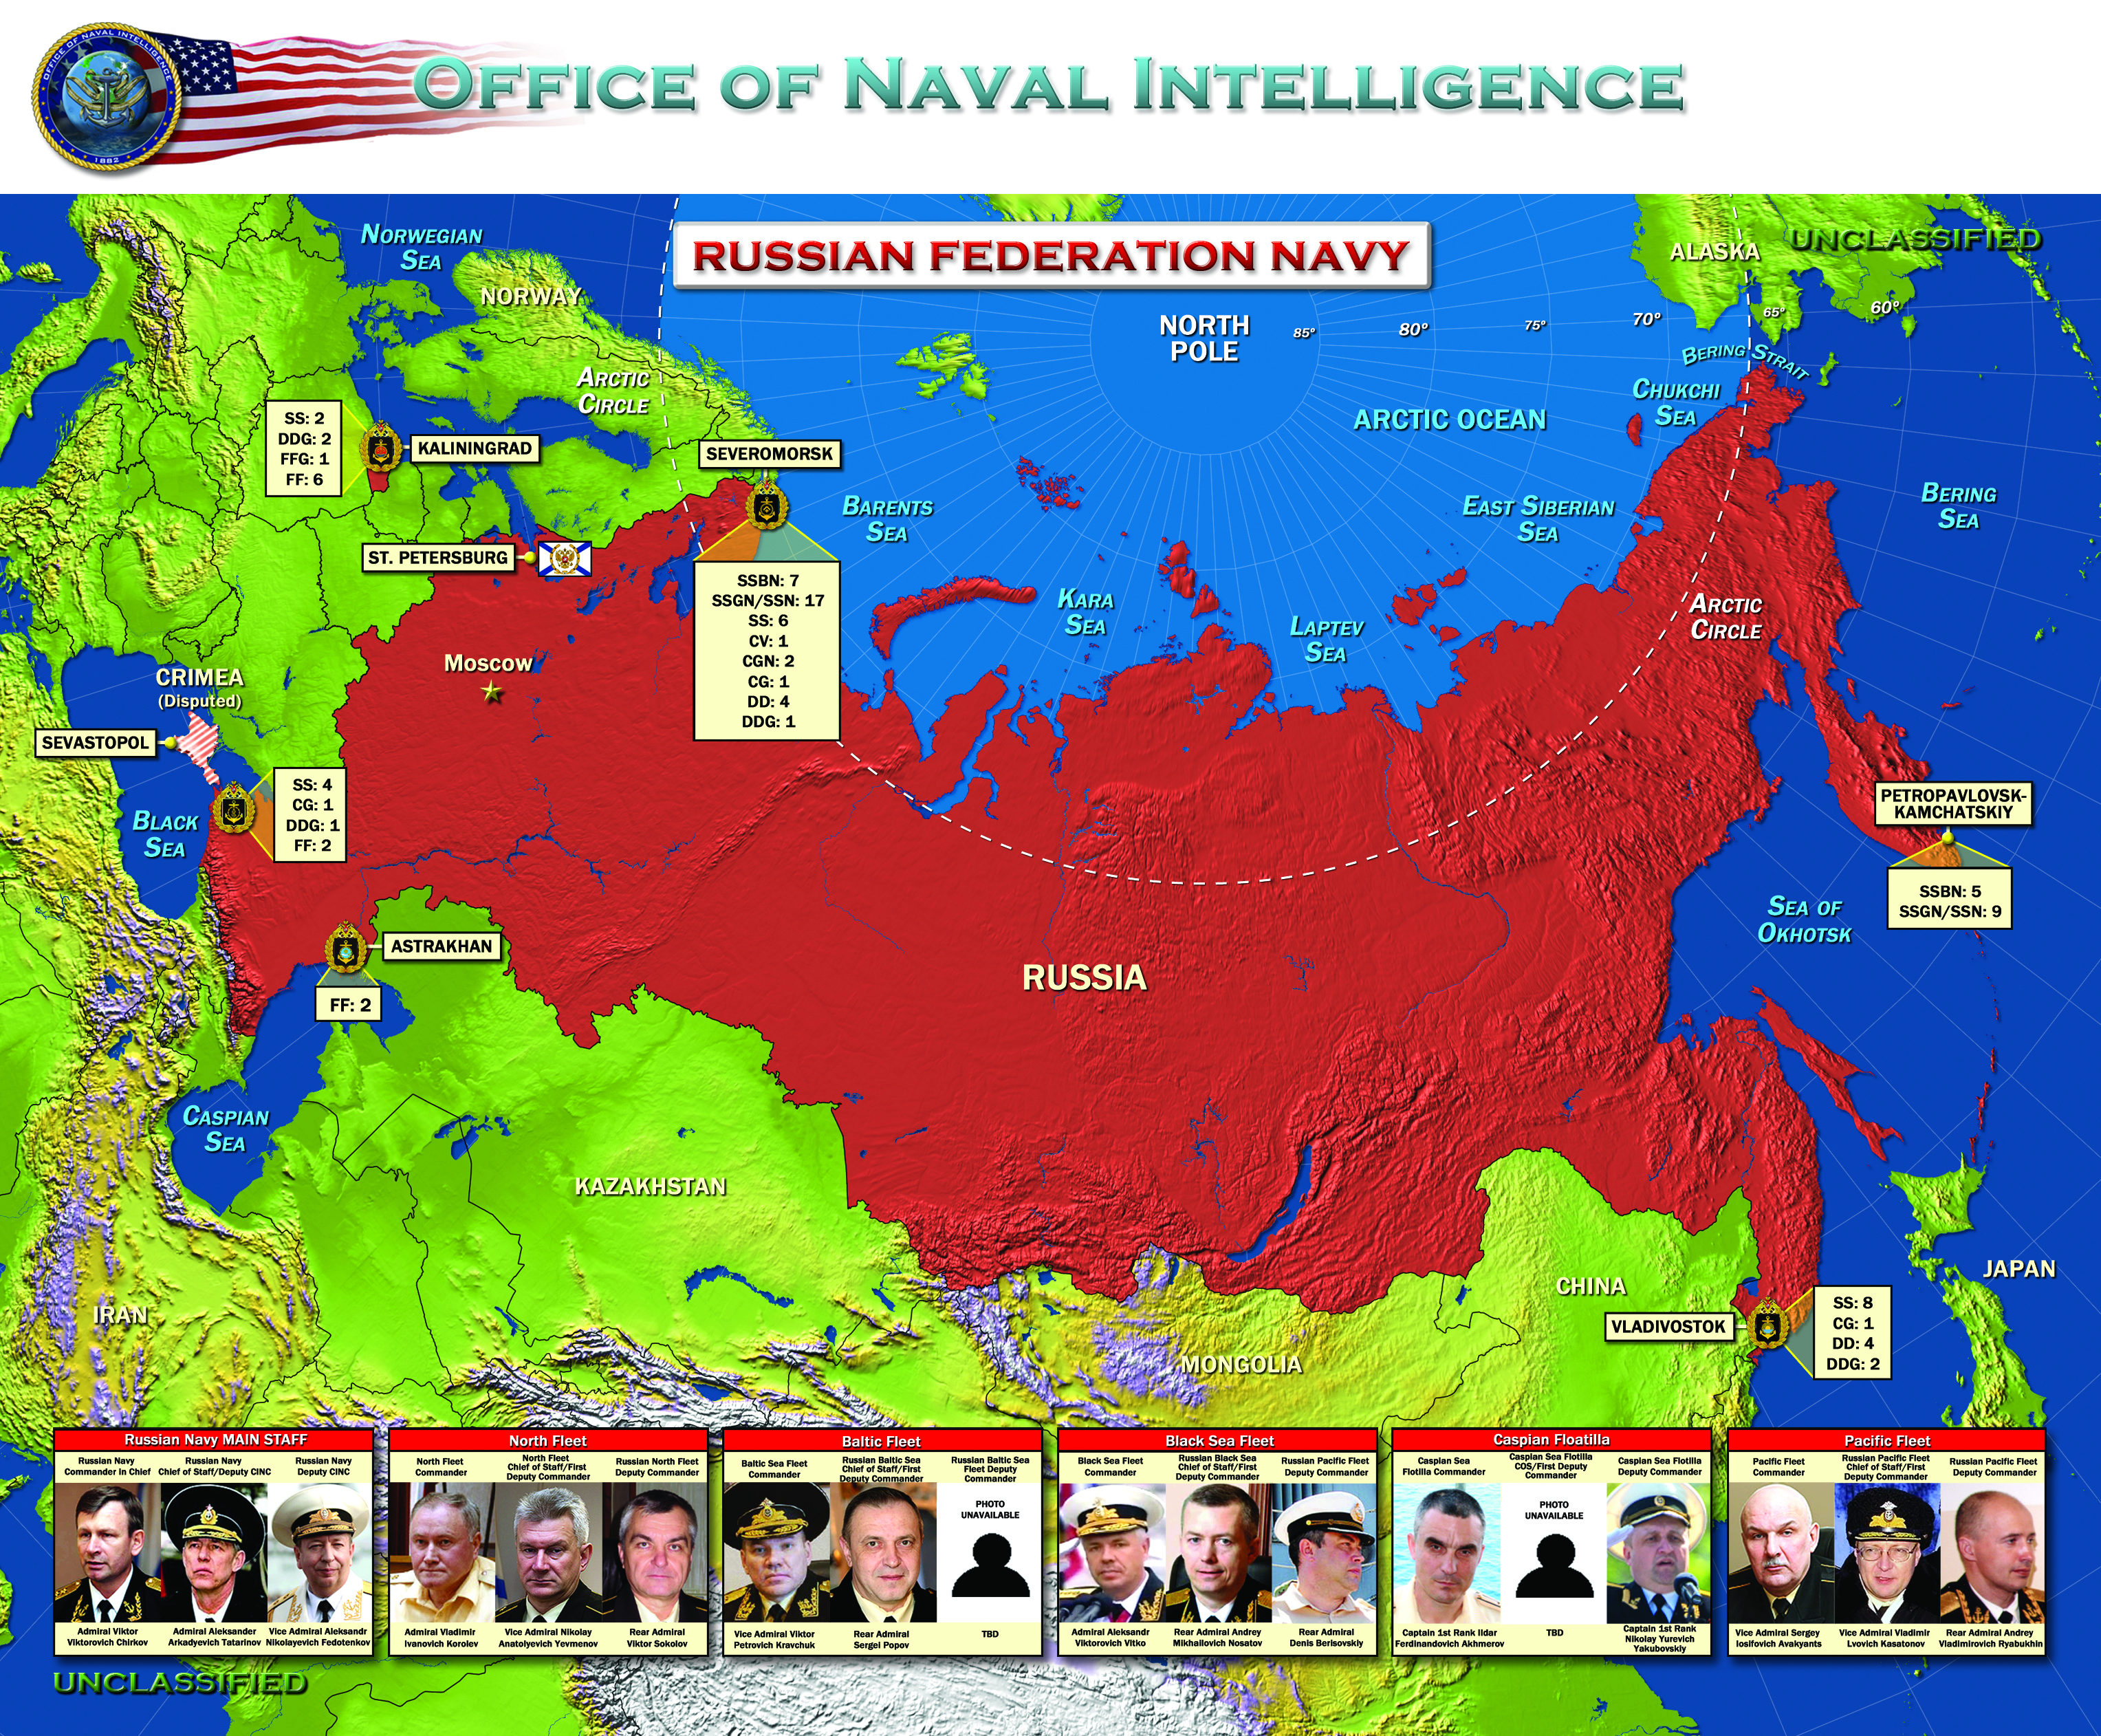 Russian Navy - Russia/RMSI - LibGuides at Naval War College